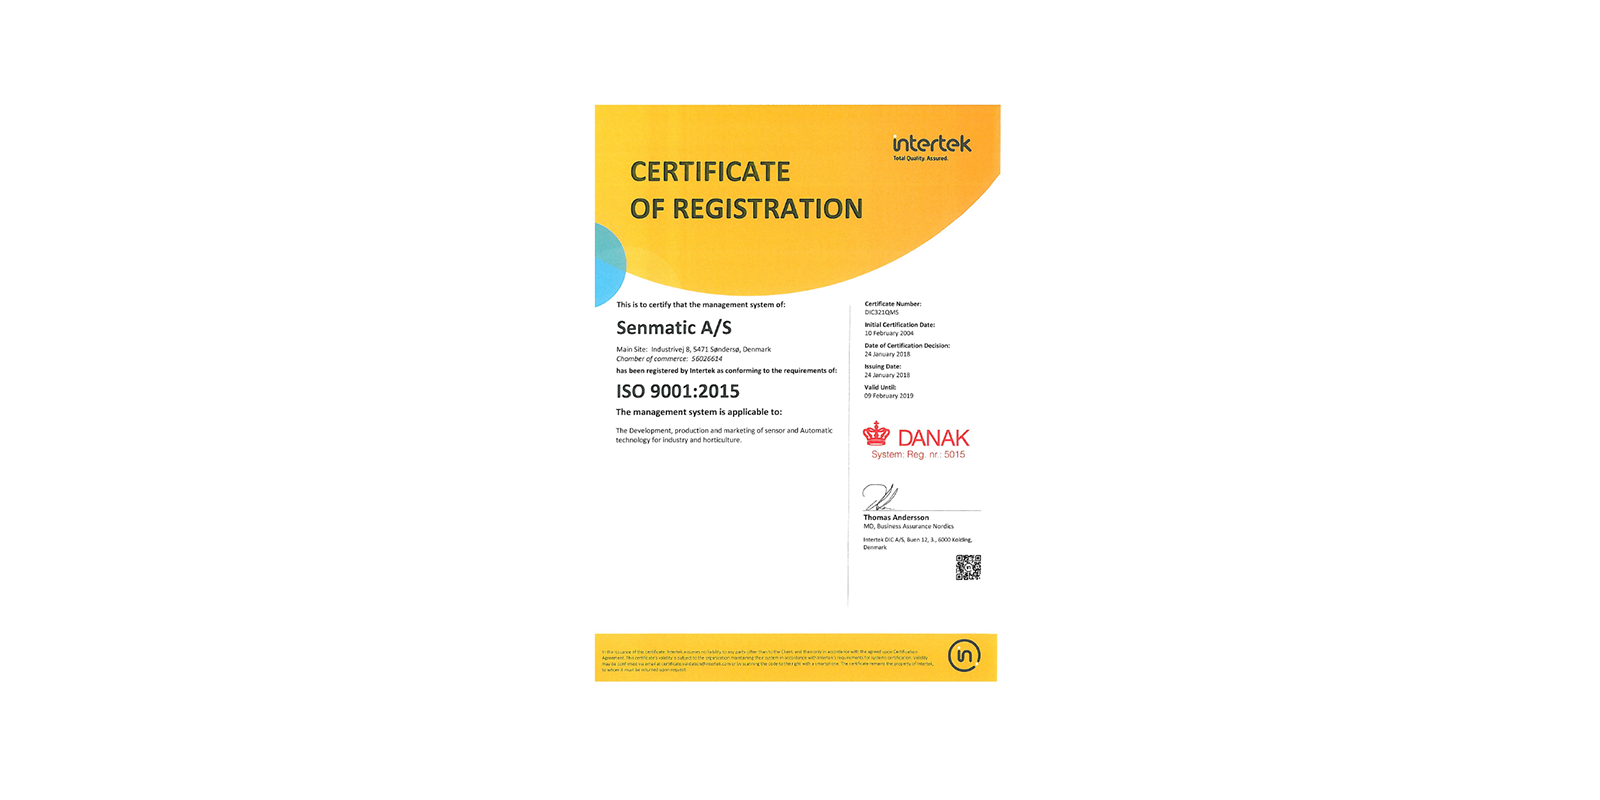 Senmatic is transferring from ISO9001-2008 to ISO9001-2015